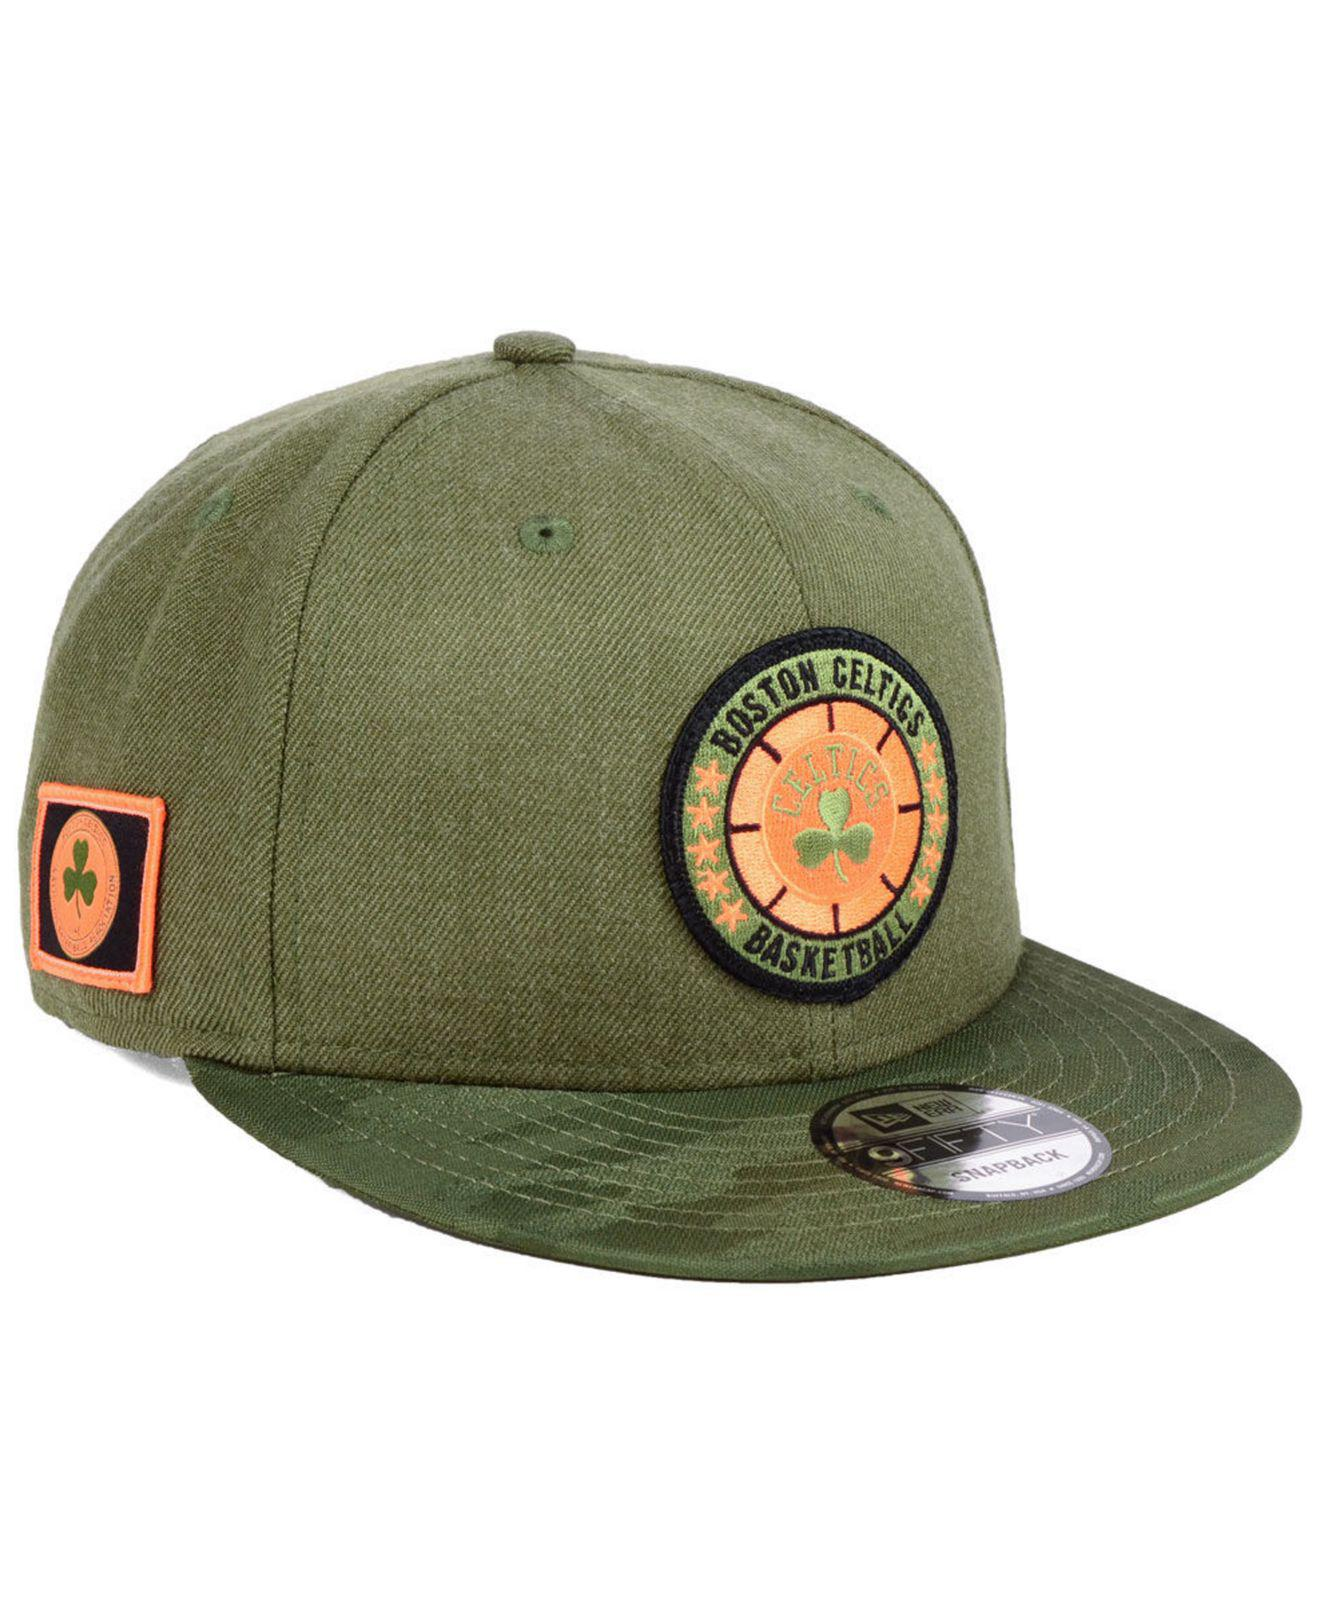 604a96cbf2a Lyst - KTZ Boston Celtics Tip Off 9fifty Snapback Cap in Green for Men